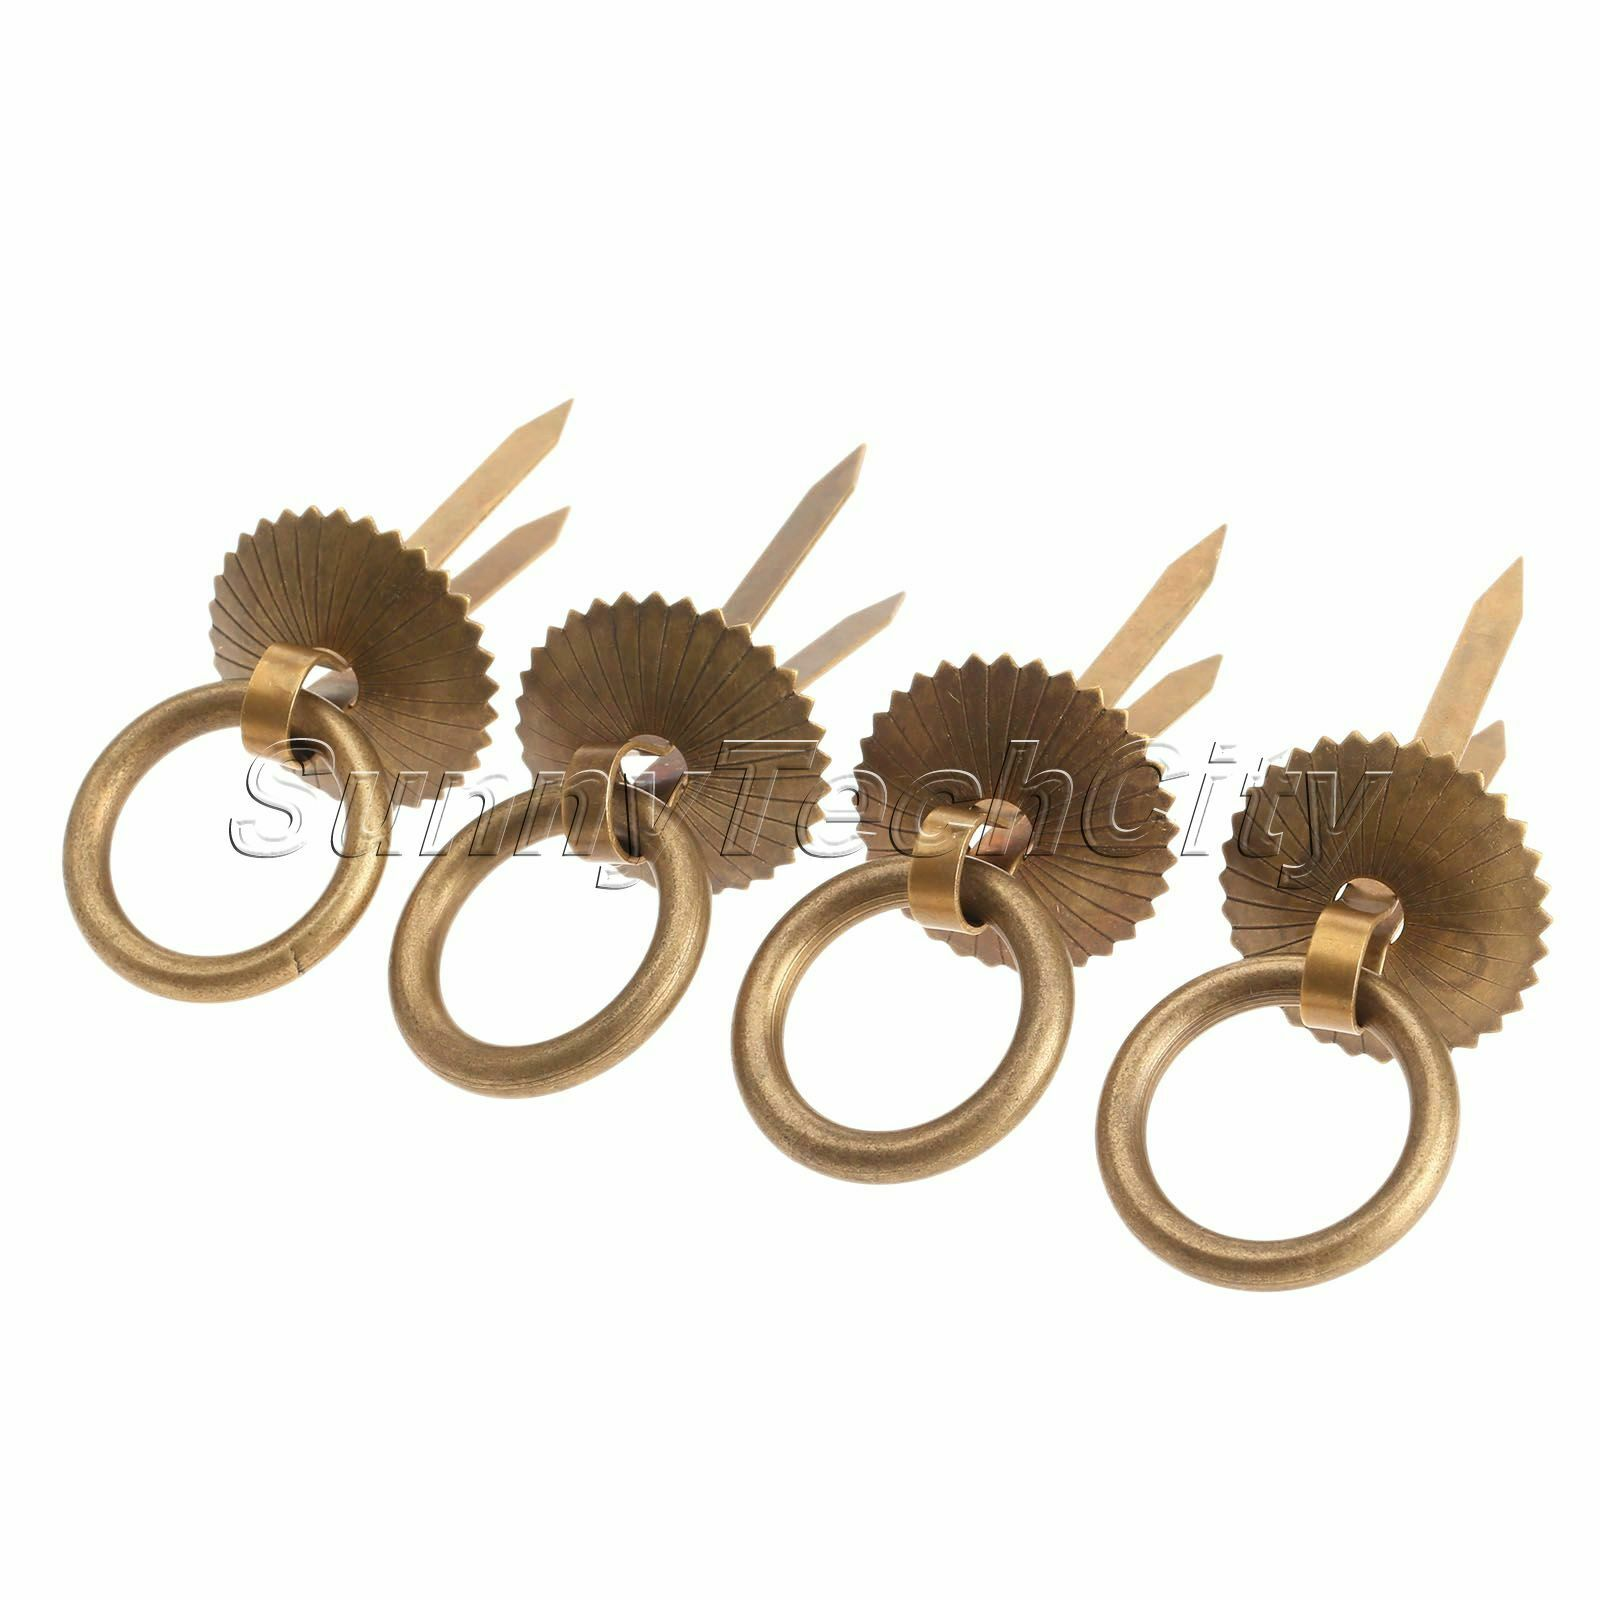 Wholesale 4Pcs Brass Drawer Pull Handle Rings for Furniture Hardware Handles Dec